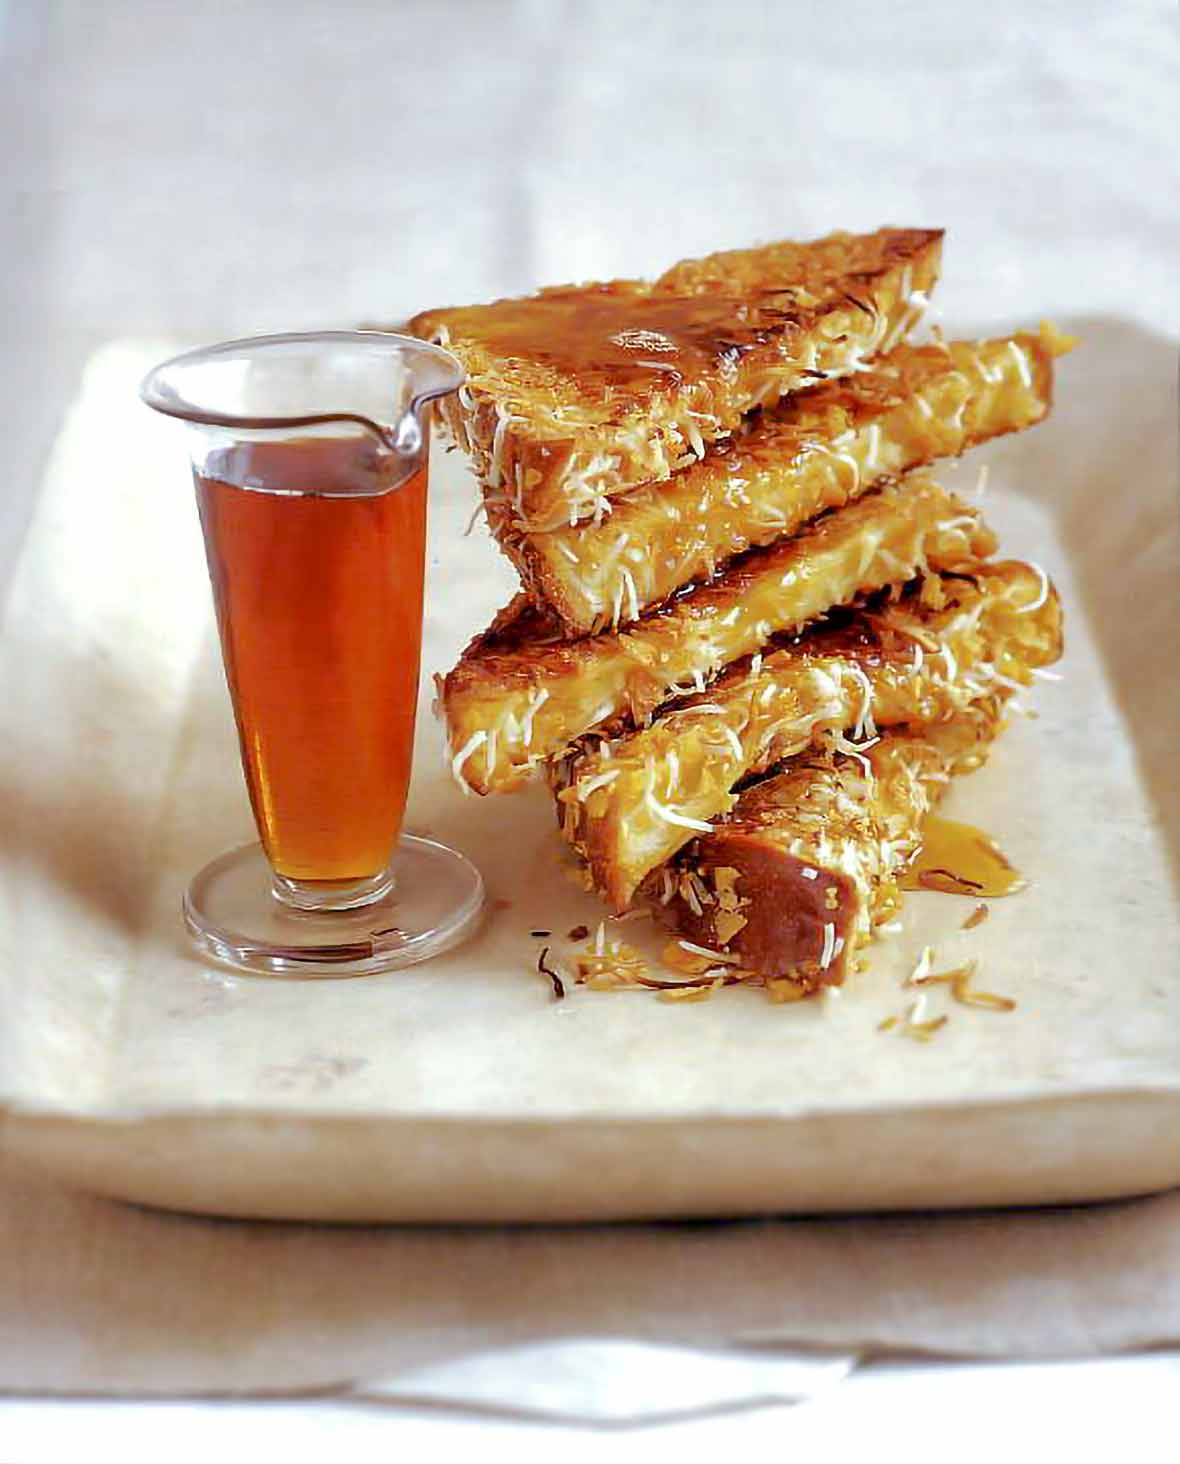 A stack of five slices of coconut french toast sprinkled with toasted coconut and dripping with maple syrup on a plate